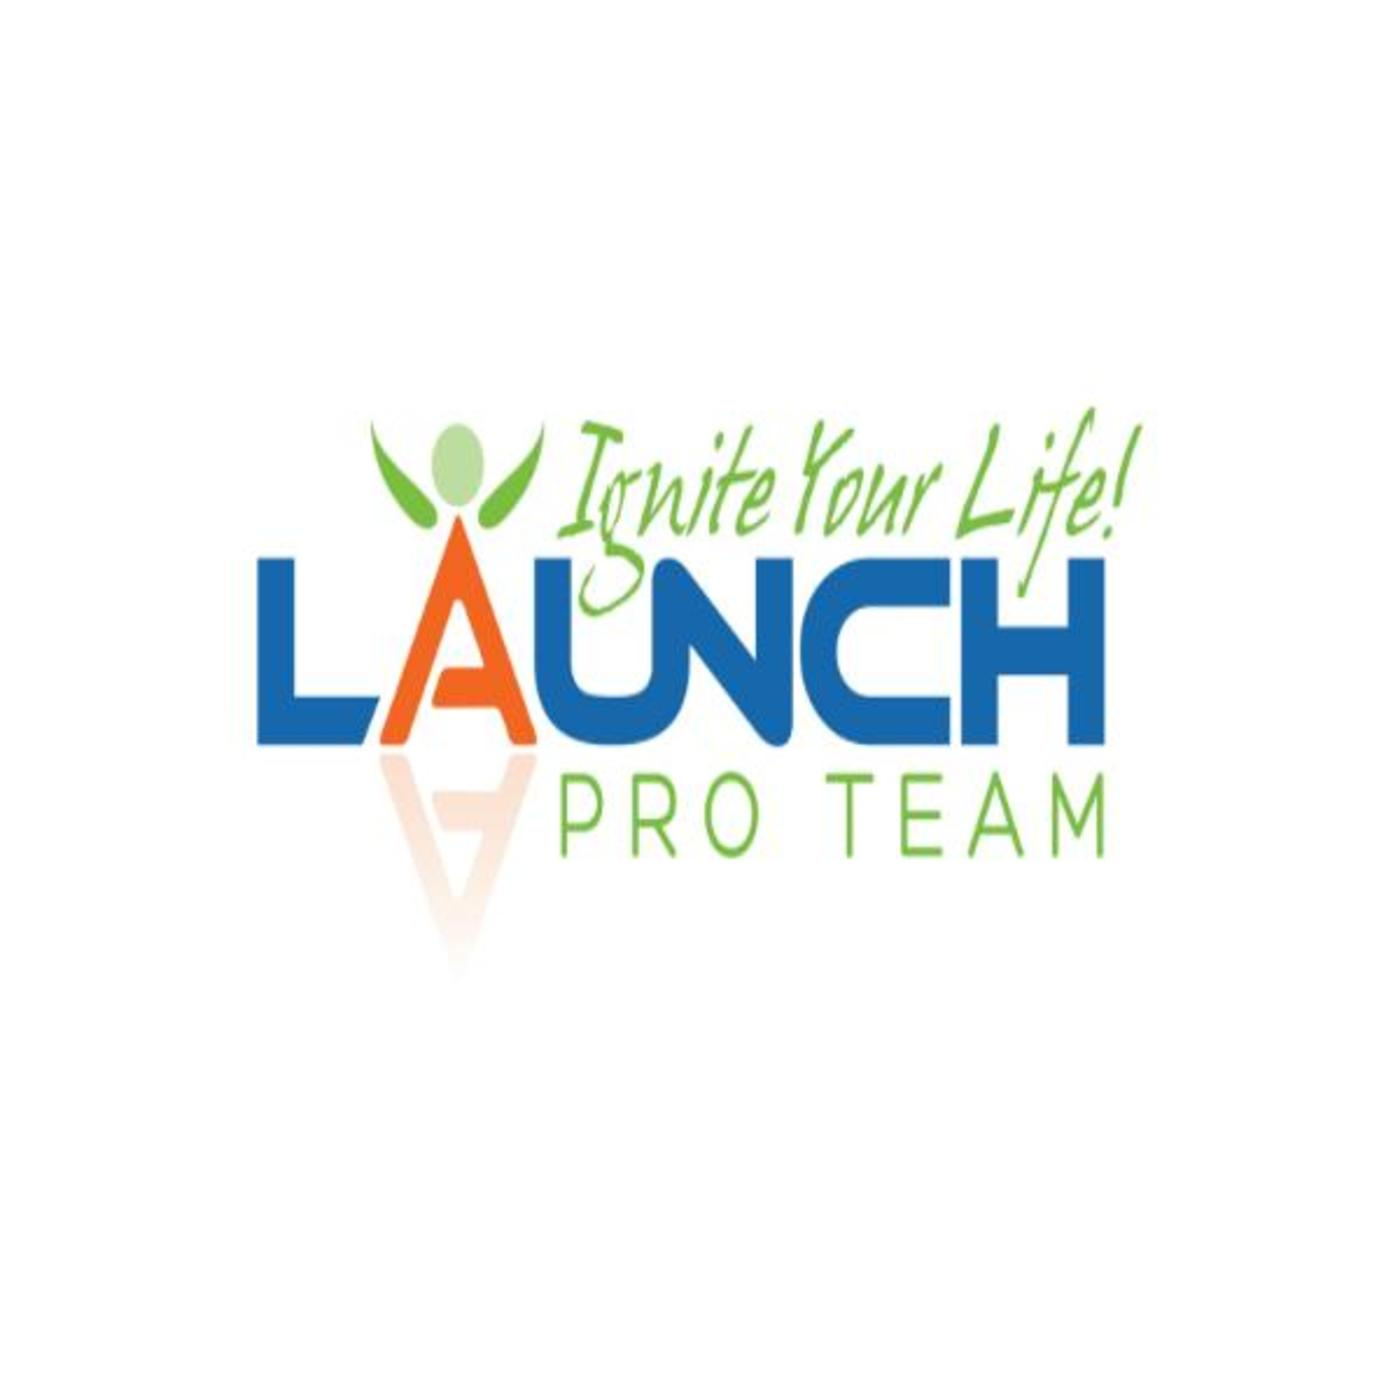 Launch your Pro Mindset